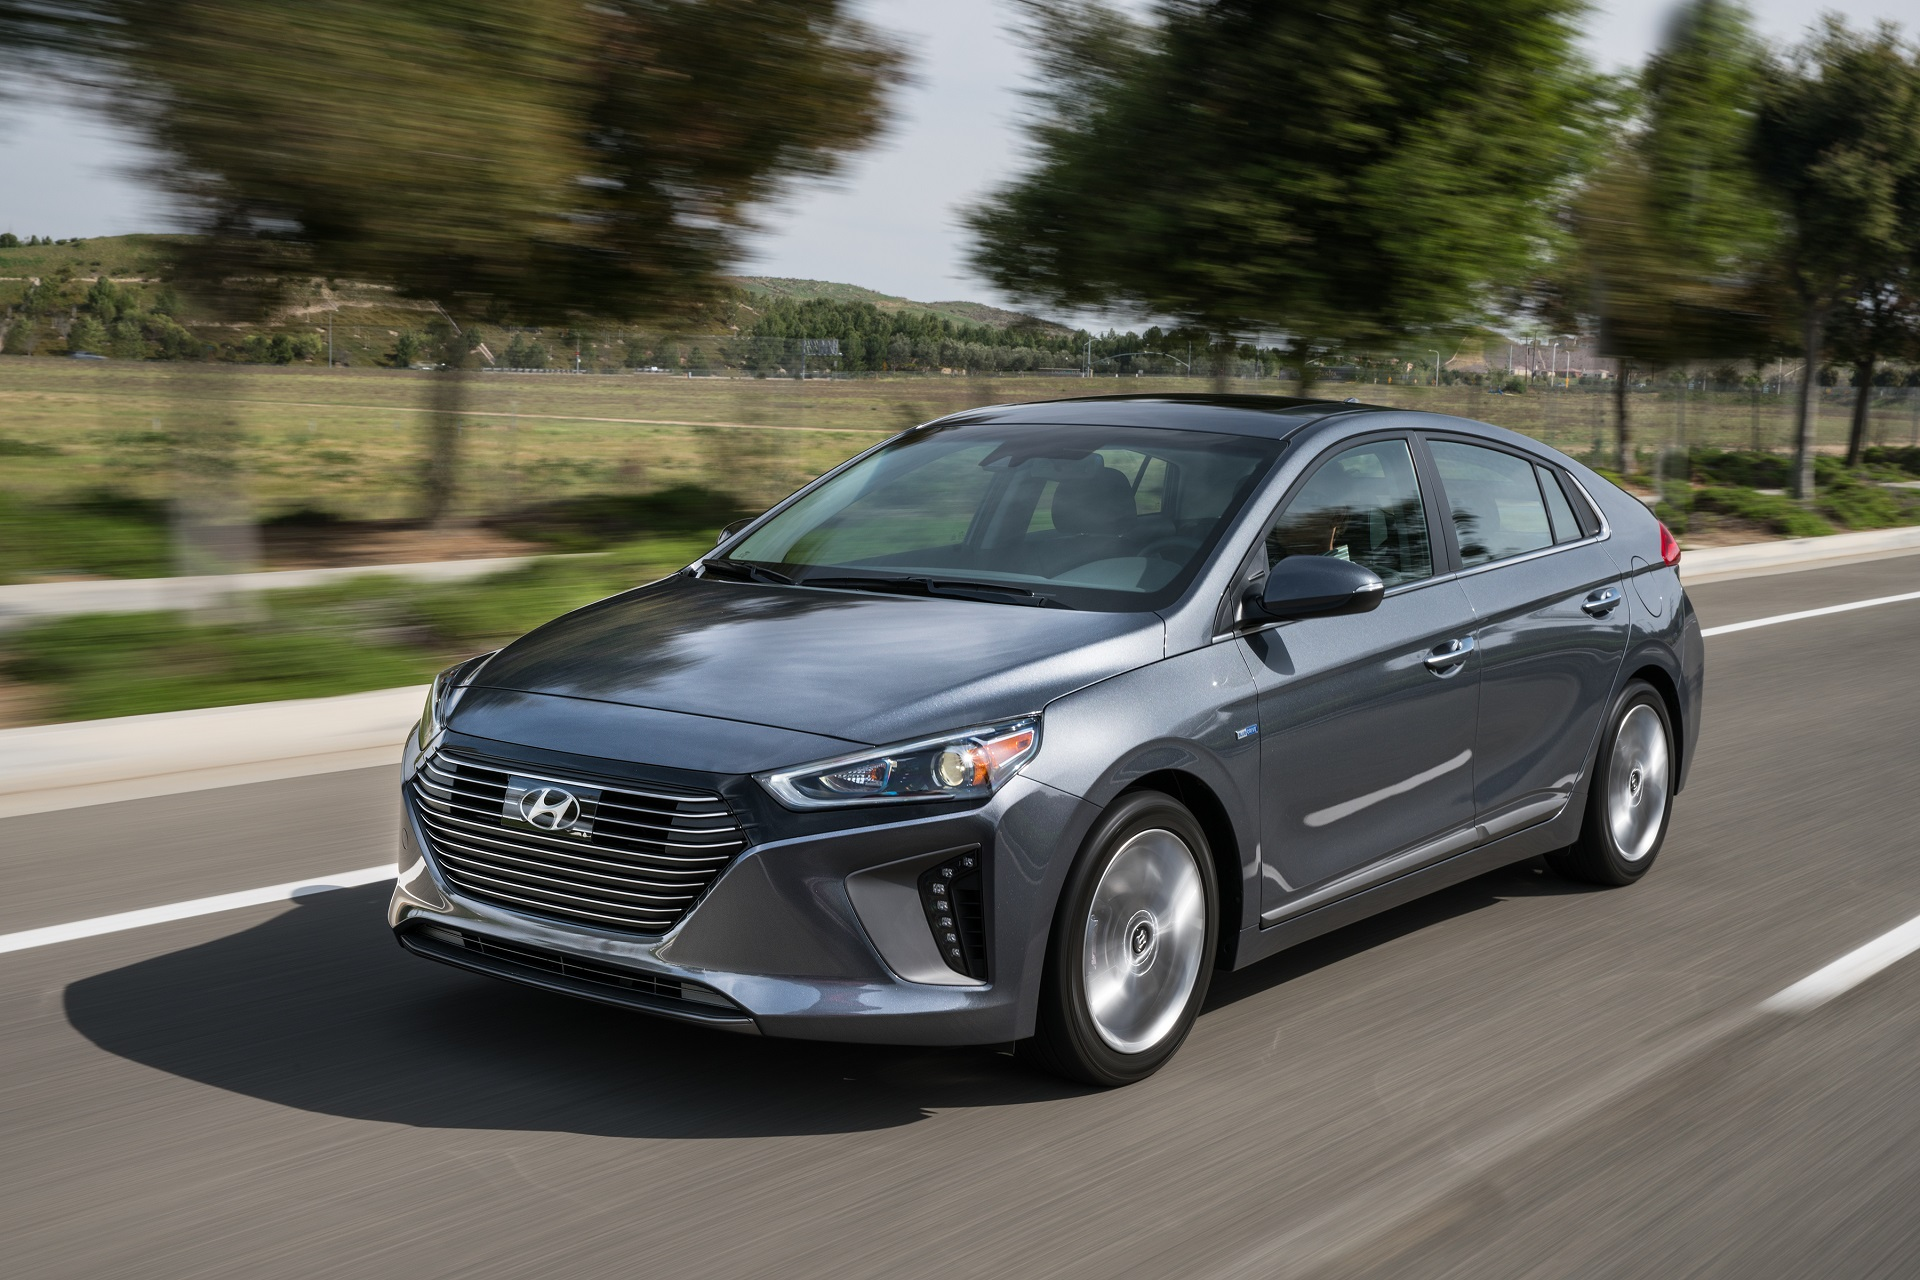 2017 Hyundai Ioniq Hybrid: first drive review